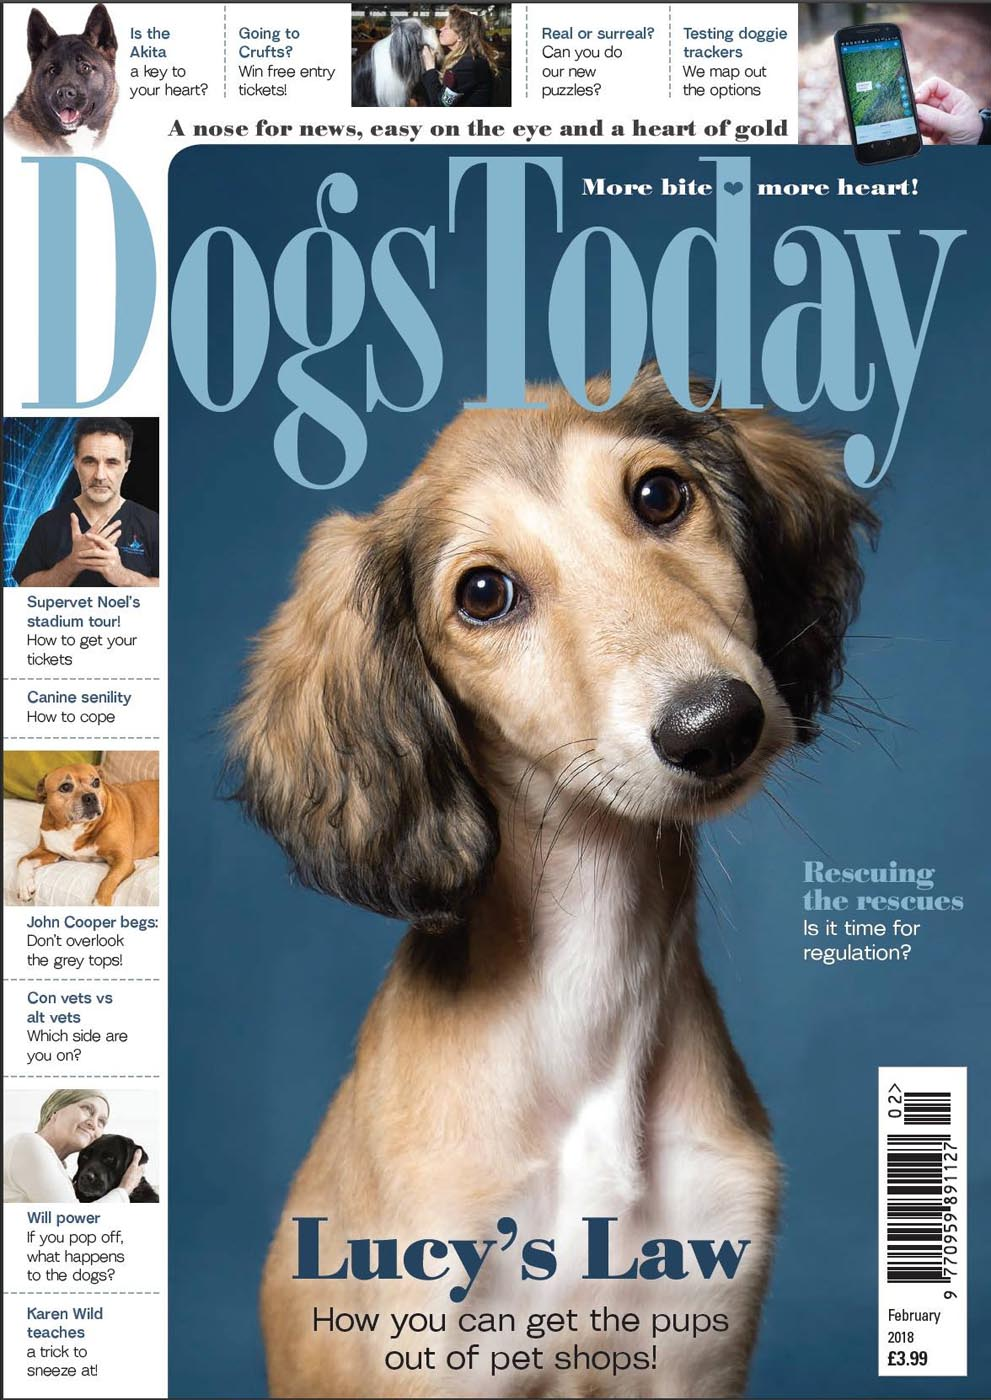 Feb 2018 dogs Today